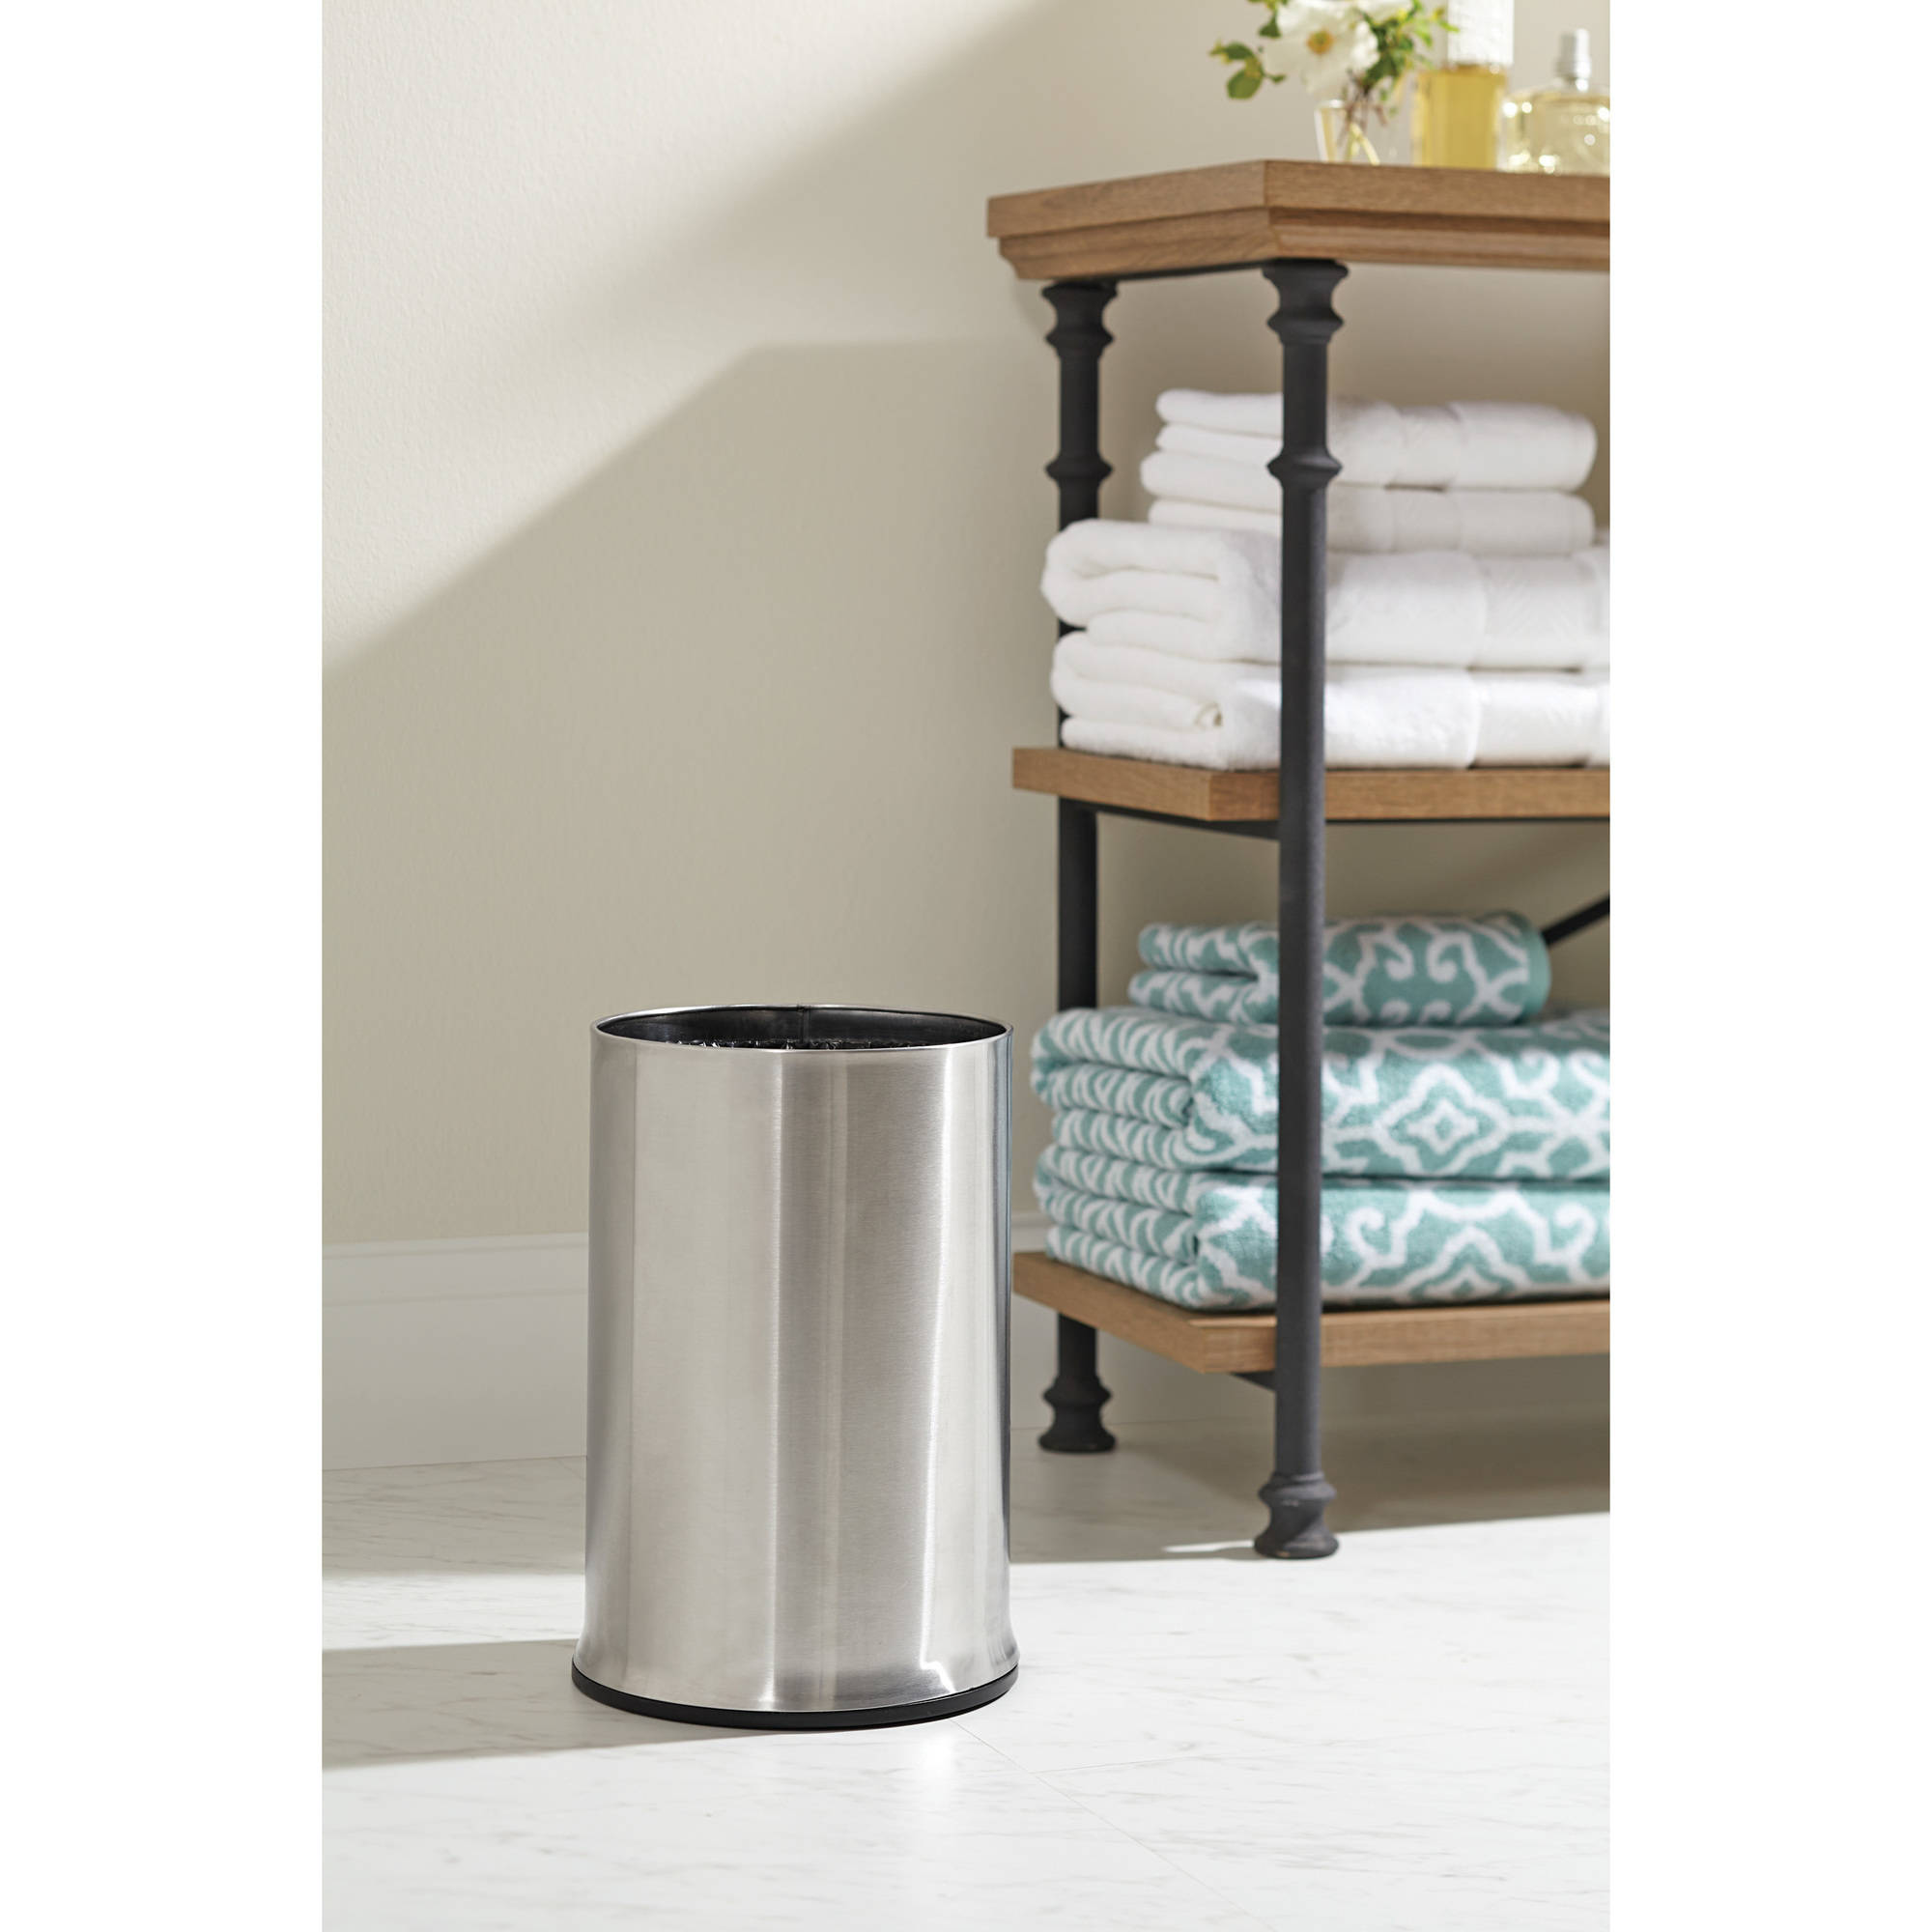 Better Homes and Gardens Stainless Steel 8L Round Slide On Trash Can